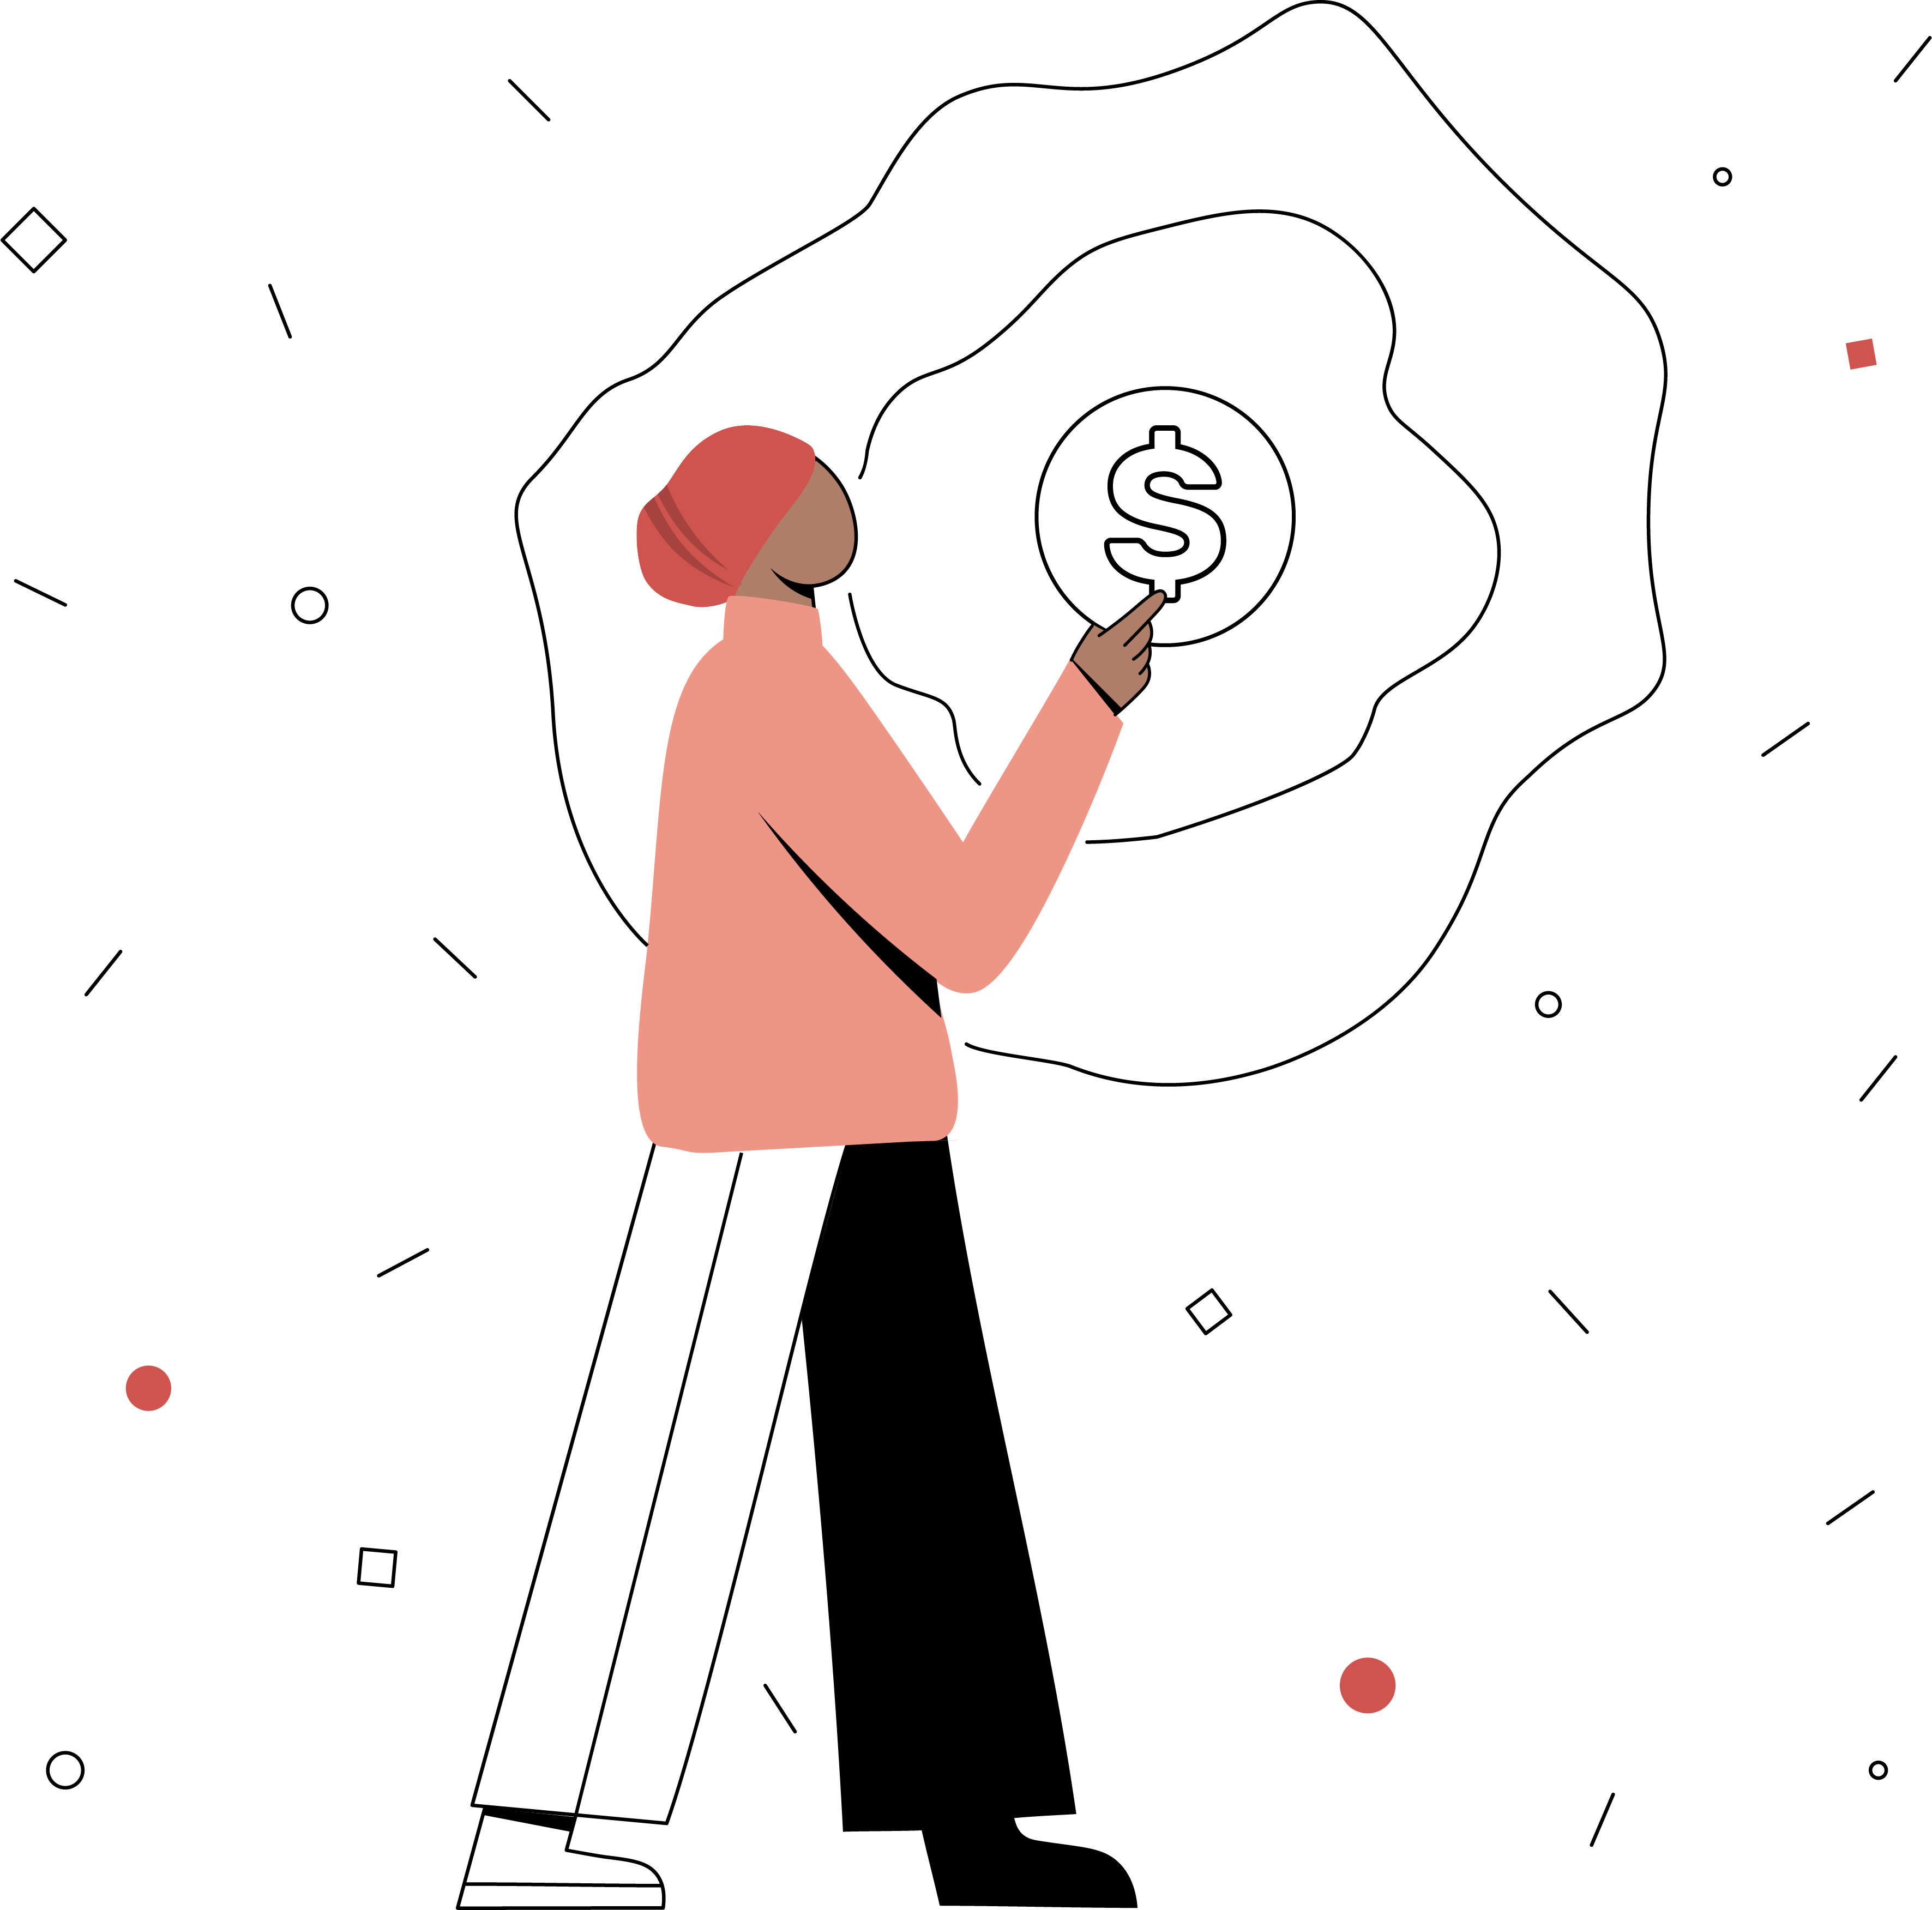 An illustration of a woman holding a dollar sign in her hand.